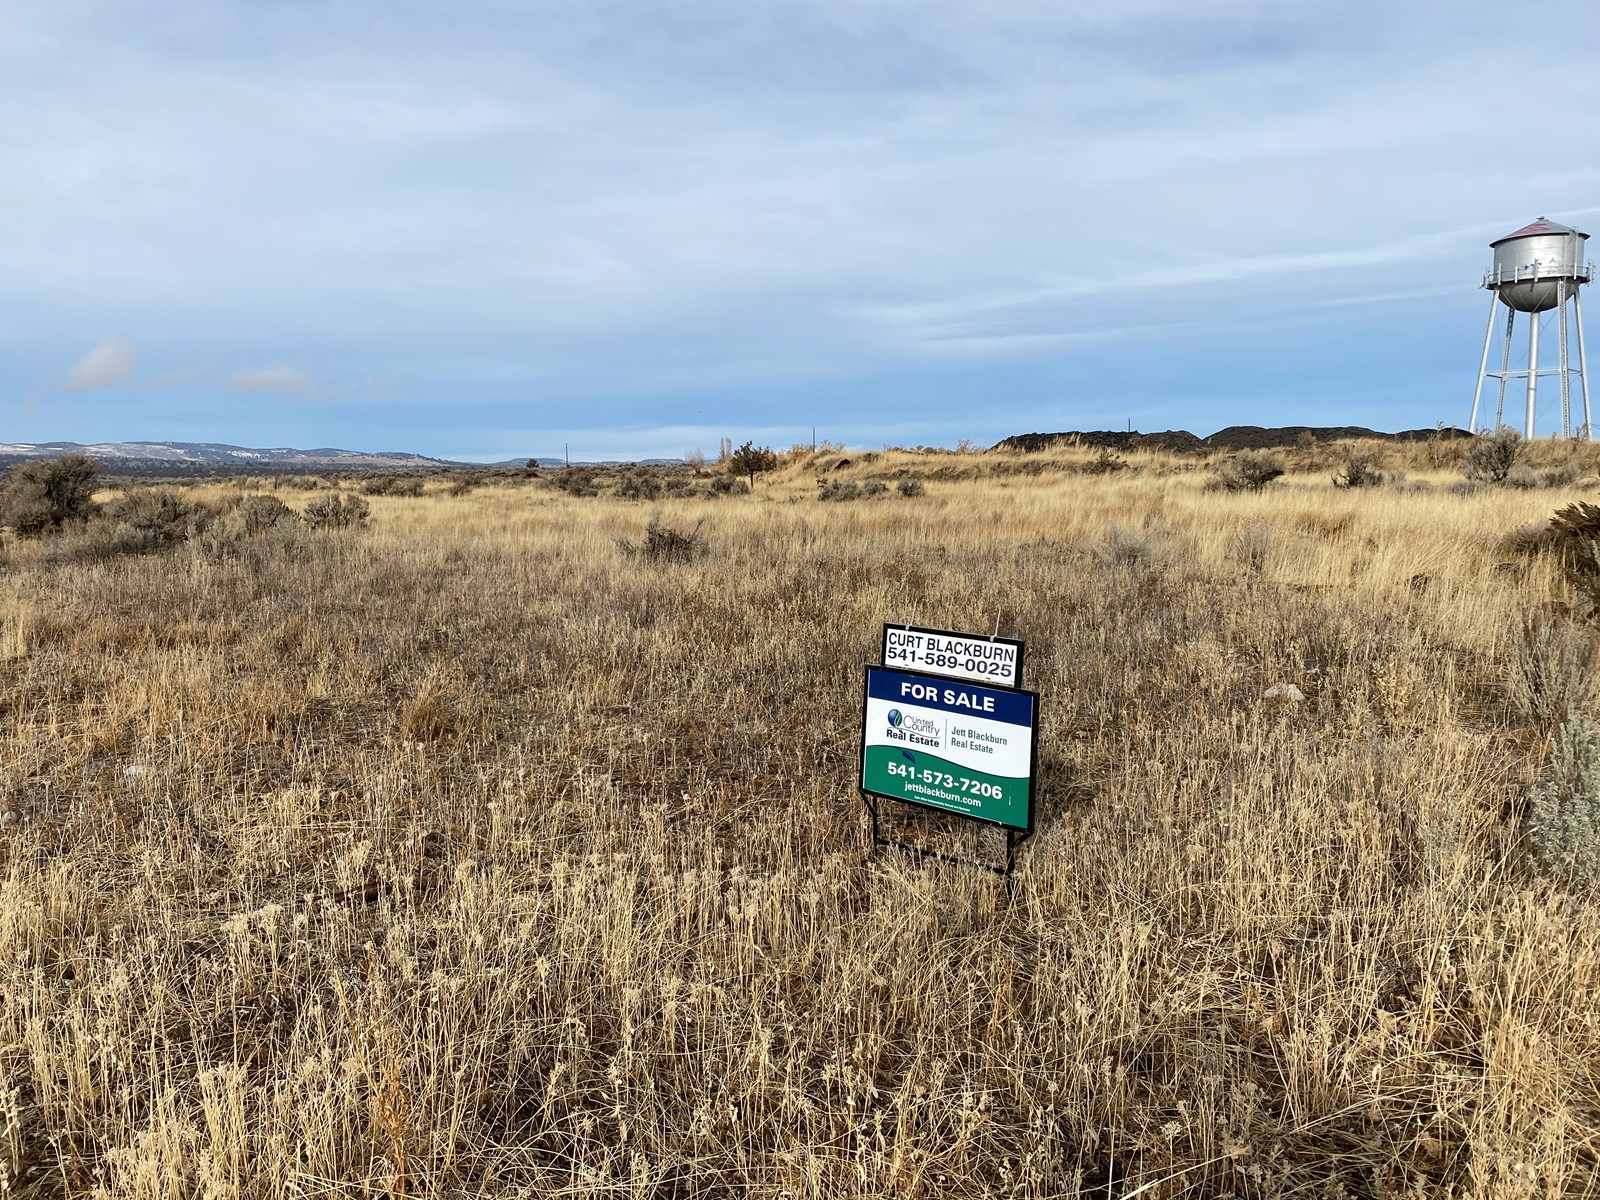 LARGE RESIDENTIAL LOT FOR SALE ON EDGE OF BURNS